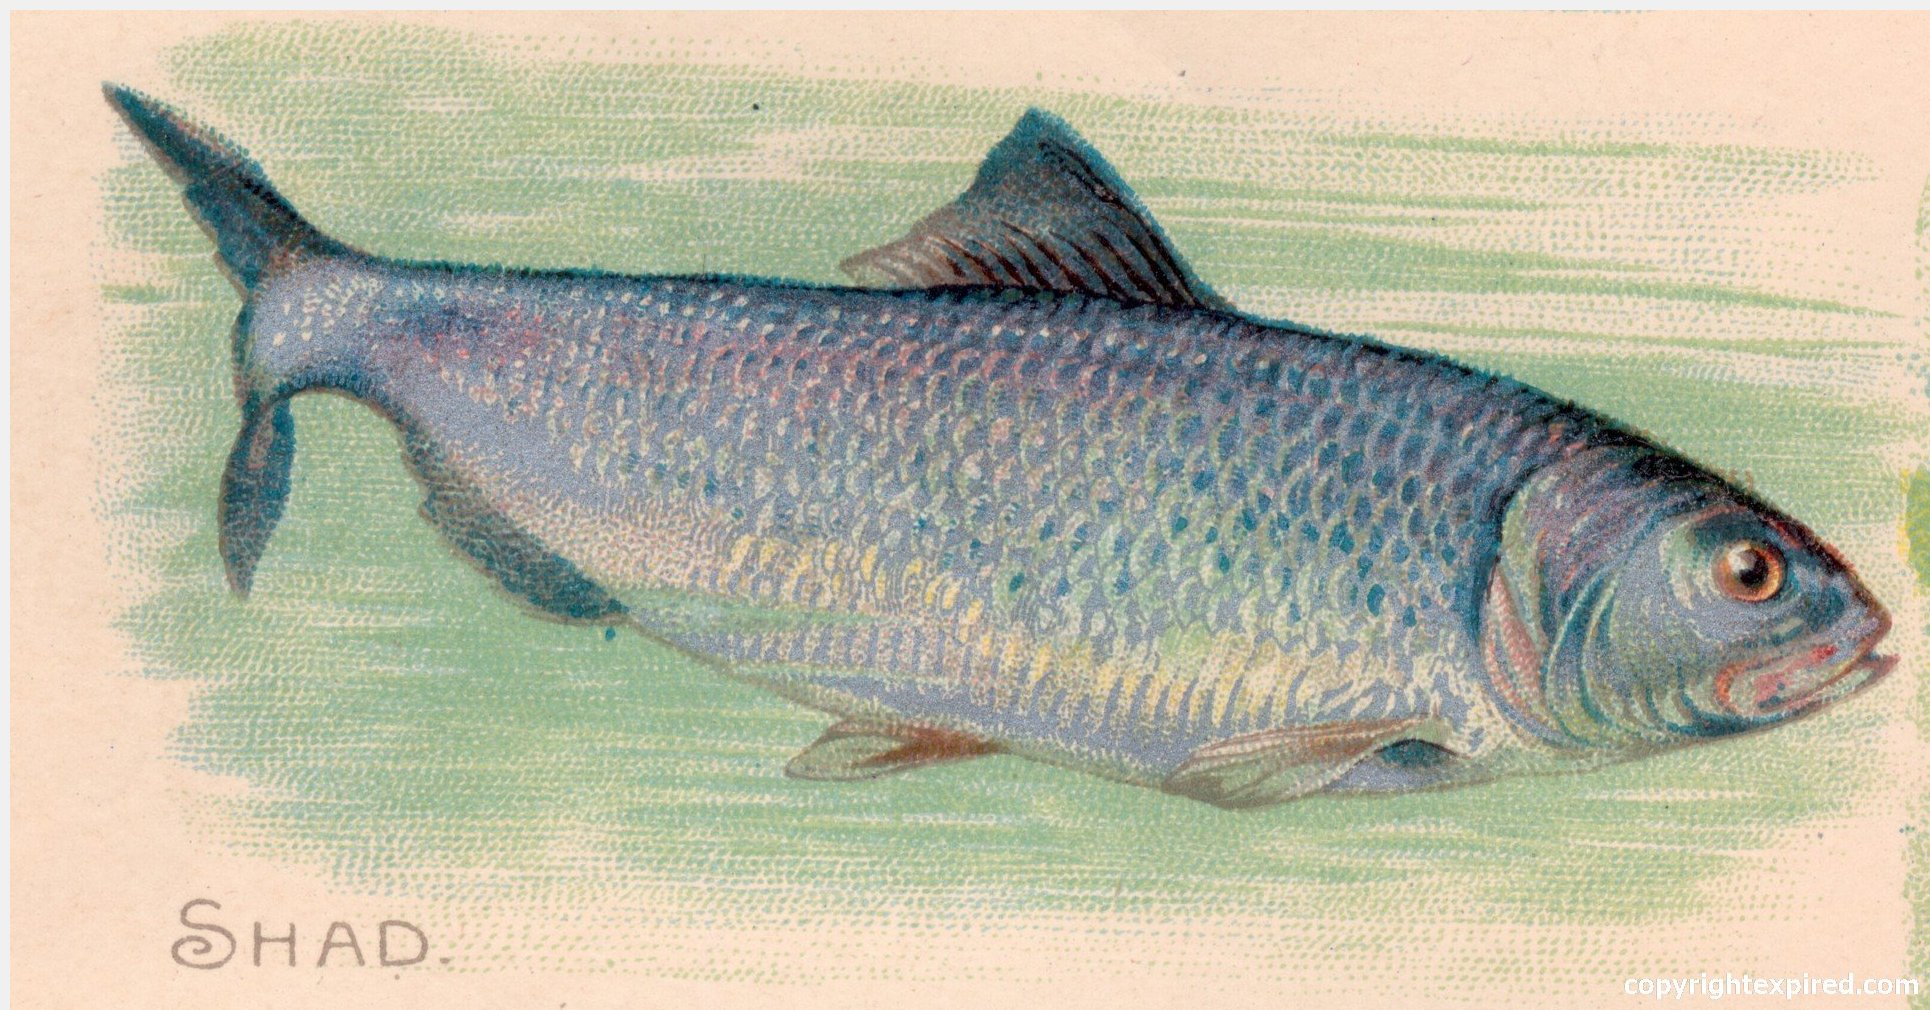 ... Fish Illustrations for Crafts, School, Brochures, Clip Art - Shad